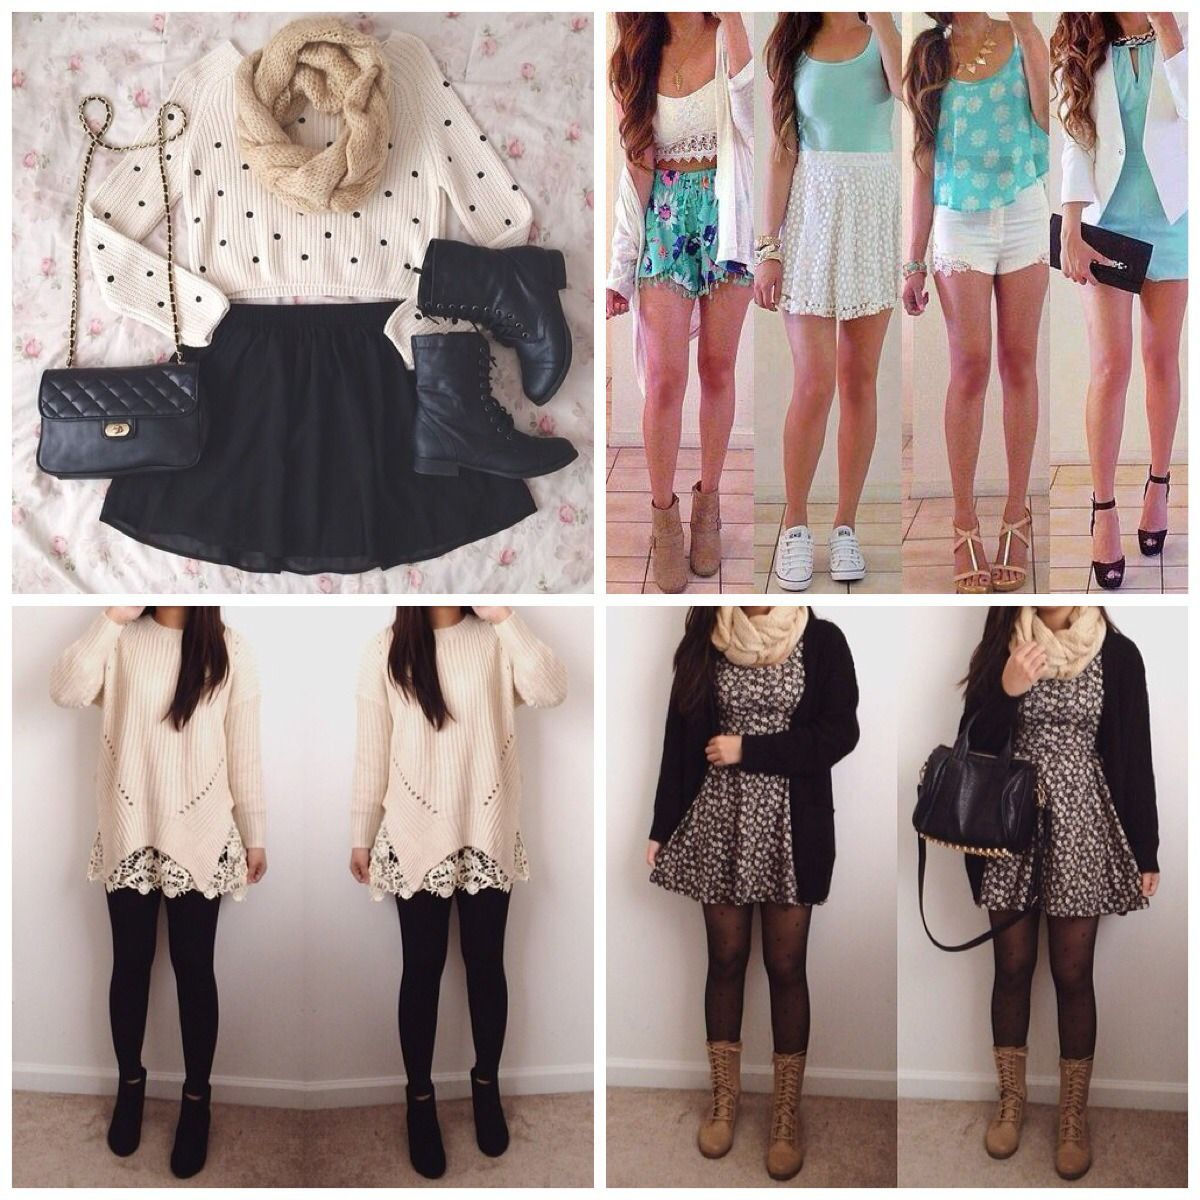 The Various Options For Cute School Outfits : Teen Casual ...